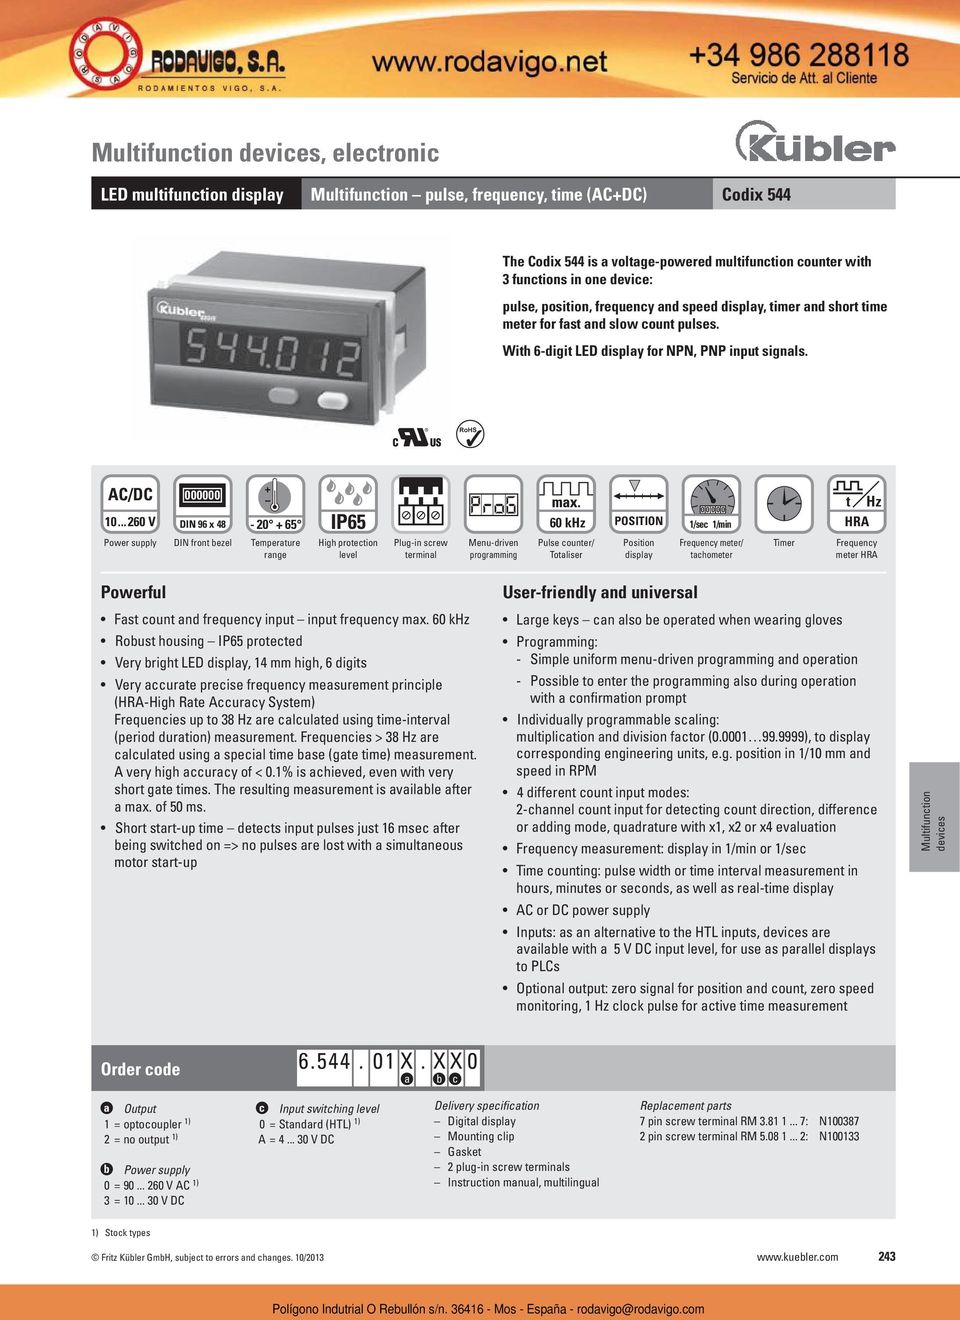 ..260 V DIN 96 x 48 Power supply DIN front bezel IP65-20 + 65 60 khz Temperature range High protection level terminal programming Pulse counter/ Totaliser POSITION Position display 0 0 0 0 0 1/sec